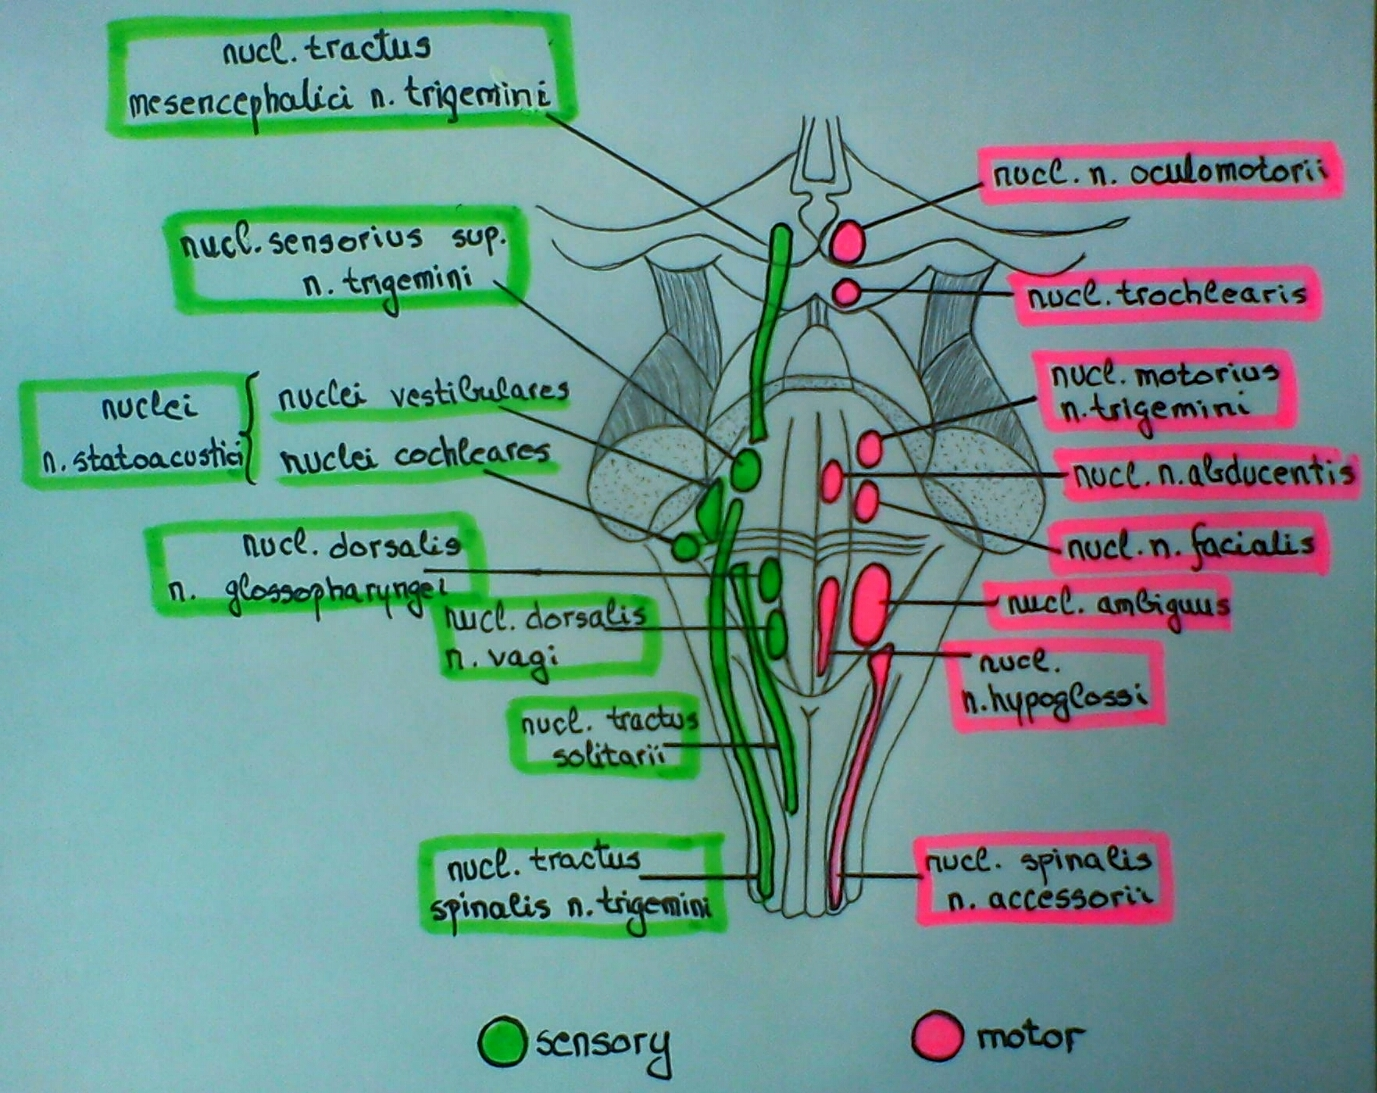 Cranial nerve nuclei in brainstem (schema)